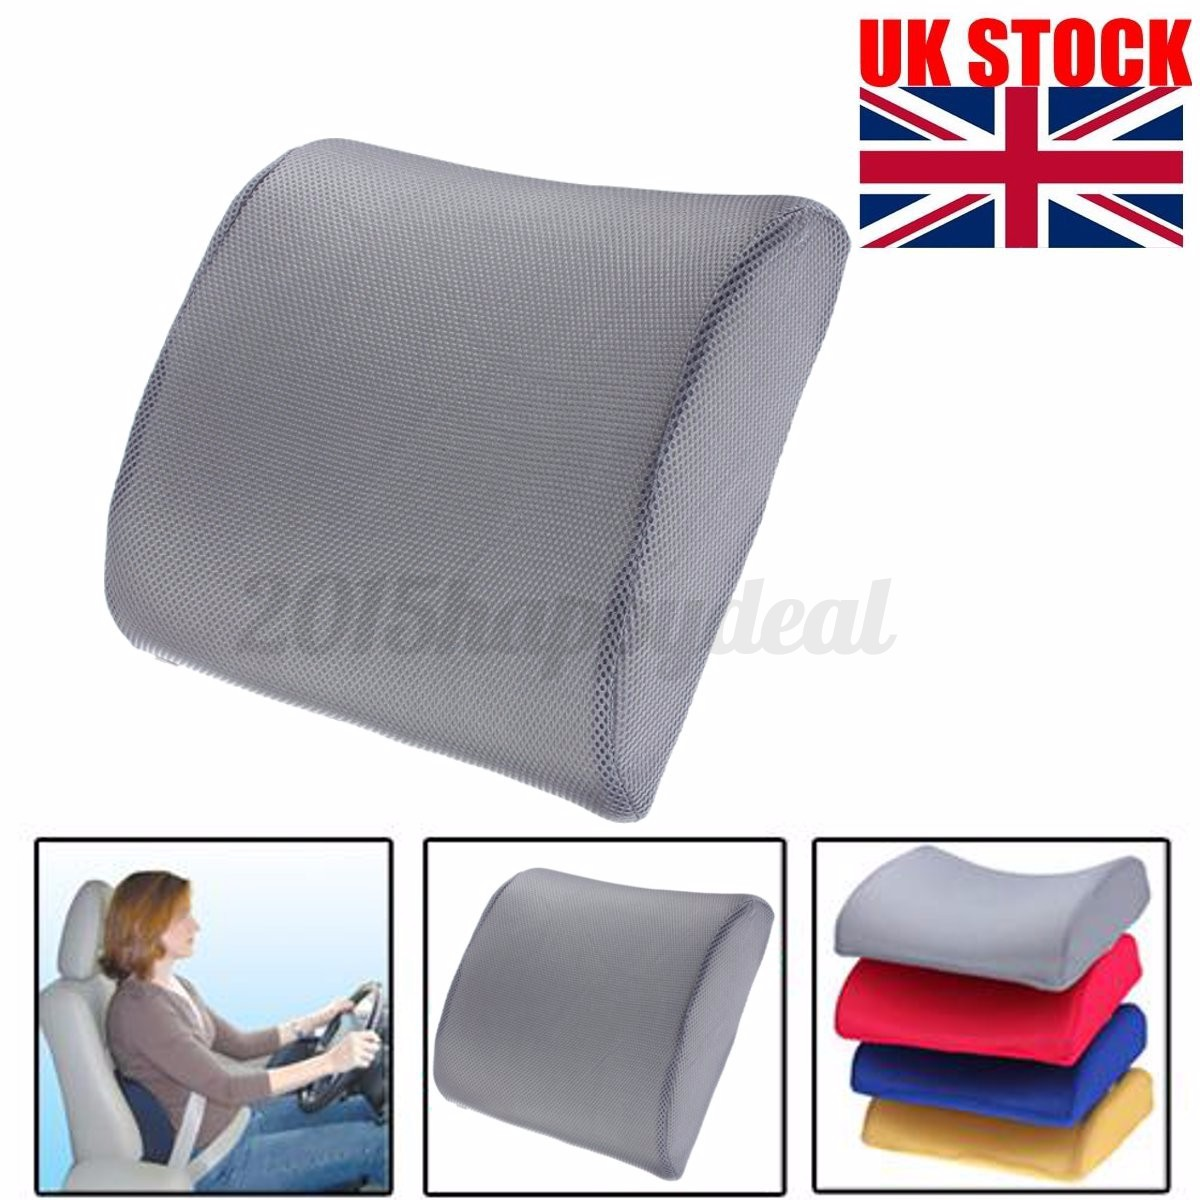 cushion comfilife chair about coccyx pain healthy back posture office everything